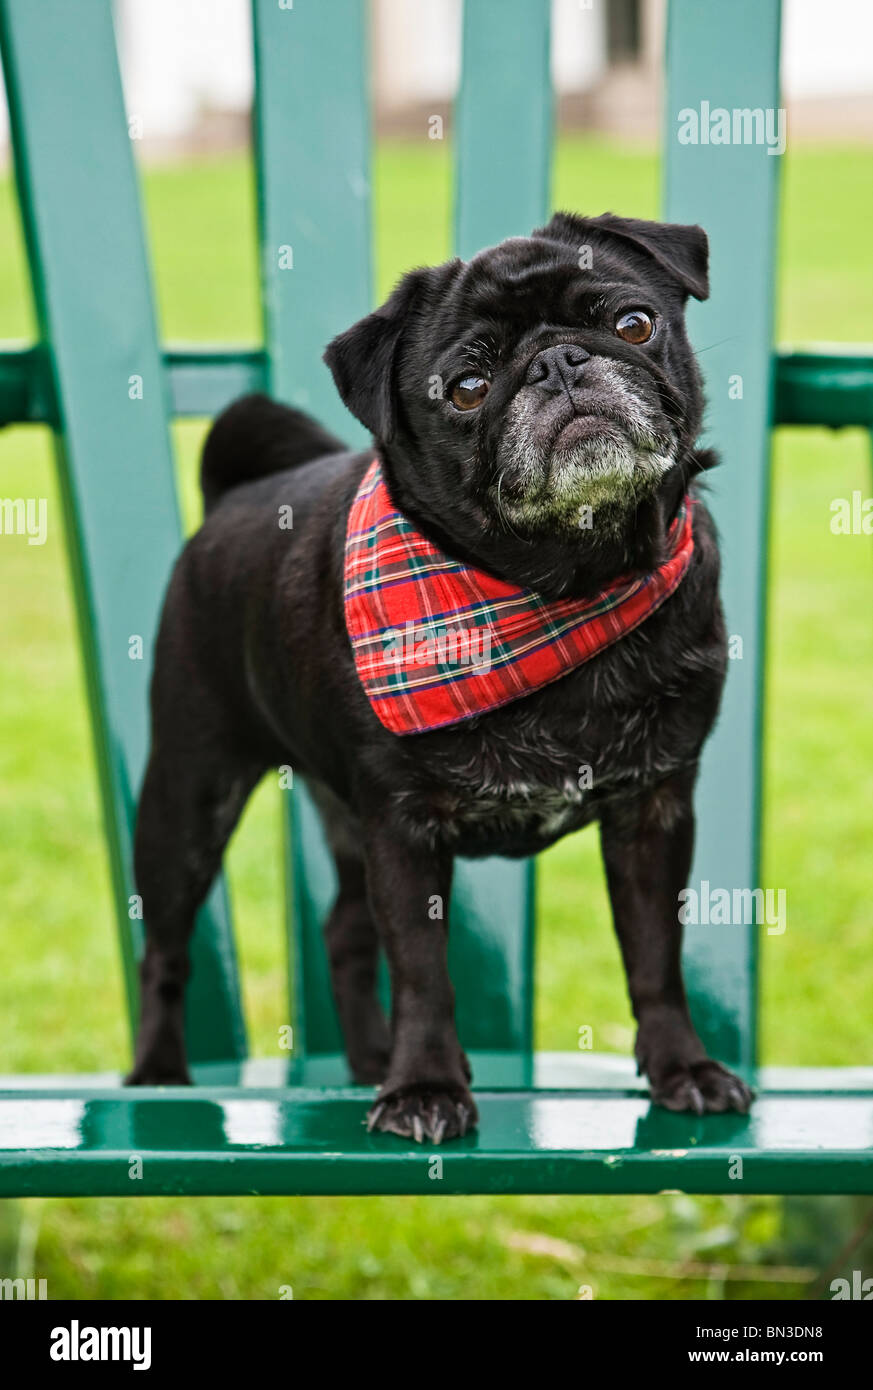 Pug puppy with scarf standing on garden chair, Close-up - Stock Image